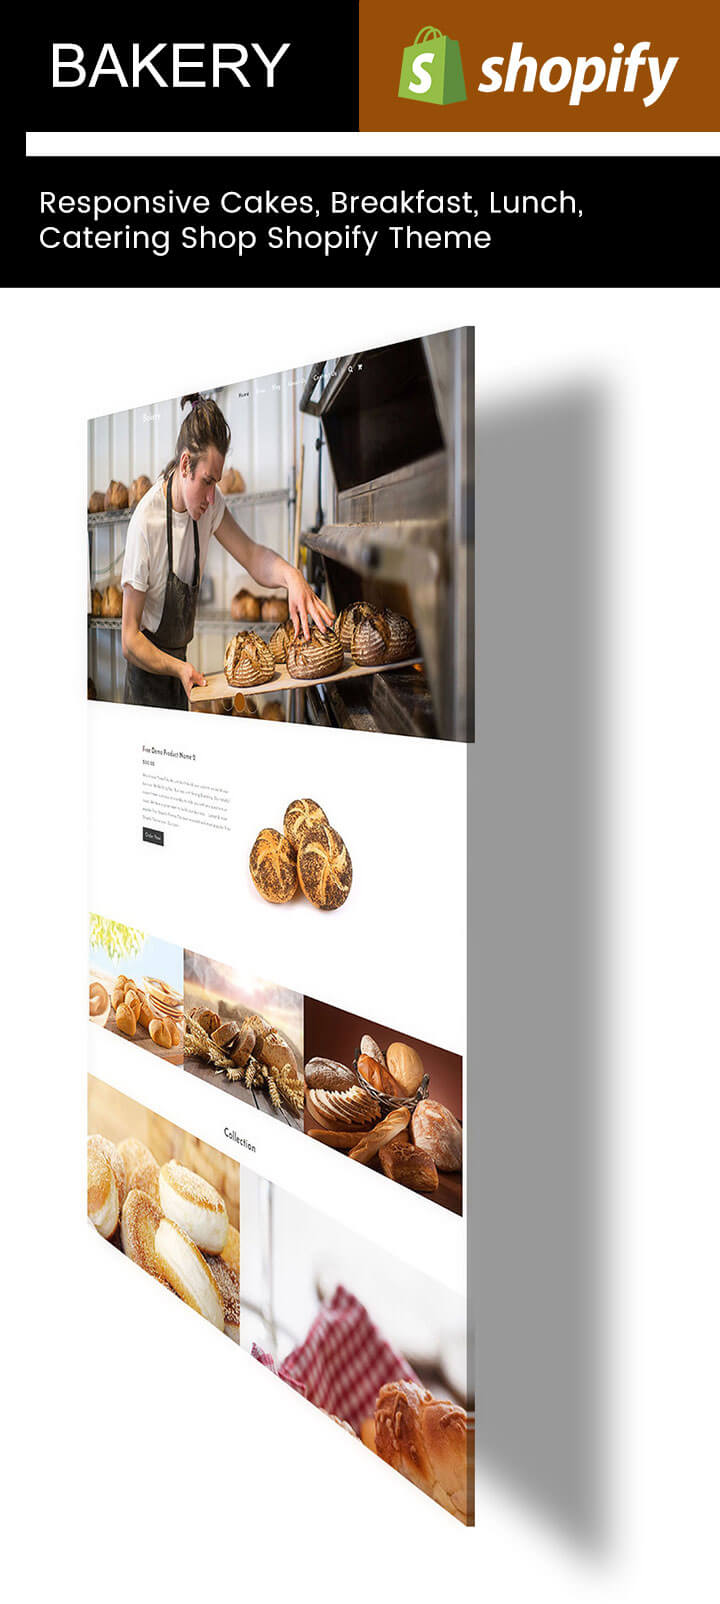 bakery-responsive-cakes-breakfast-lunch-catering-shop-shopify-theme-long-description-image-themetidy